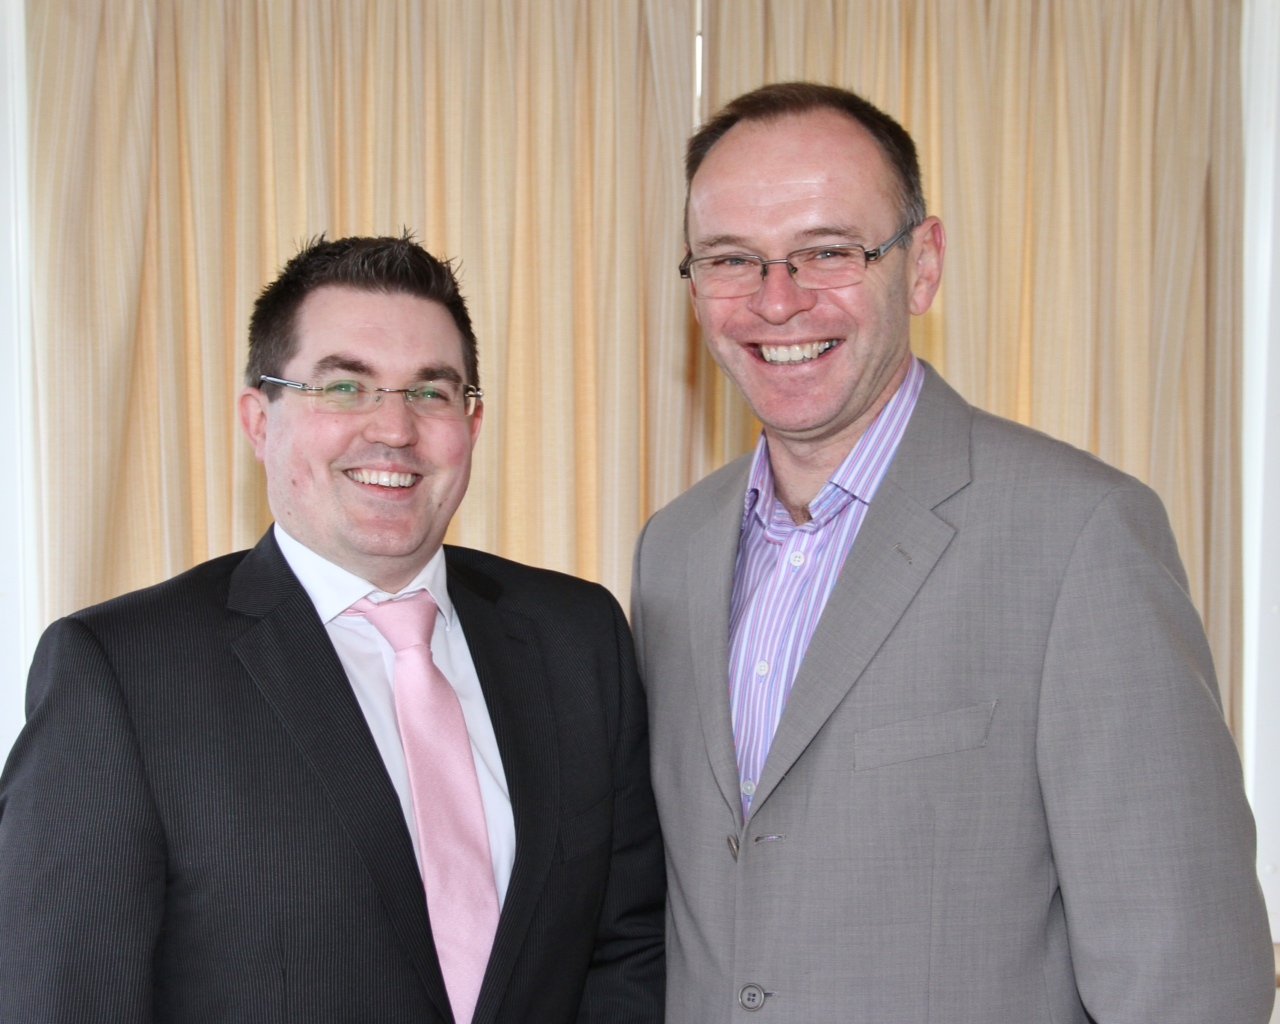 Daniel Duffy and Robert Moloney Social Selling Solutions